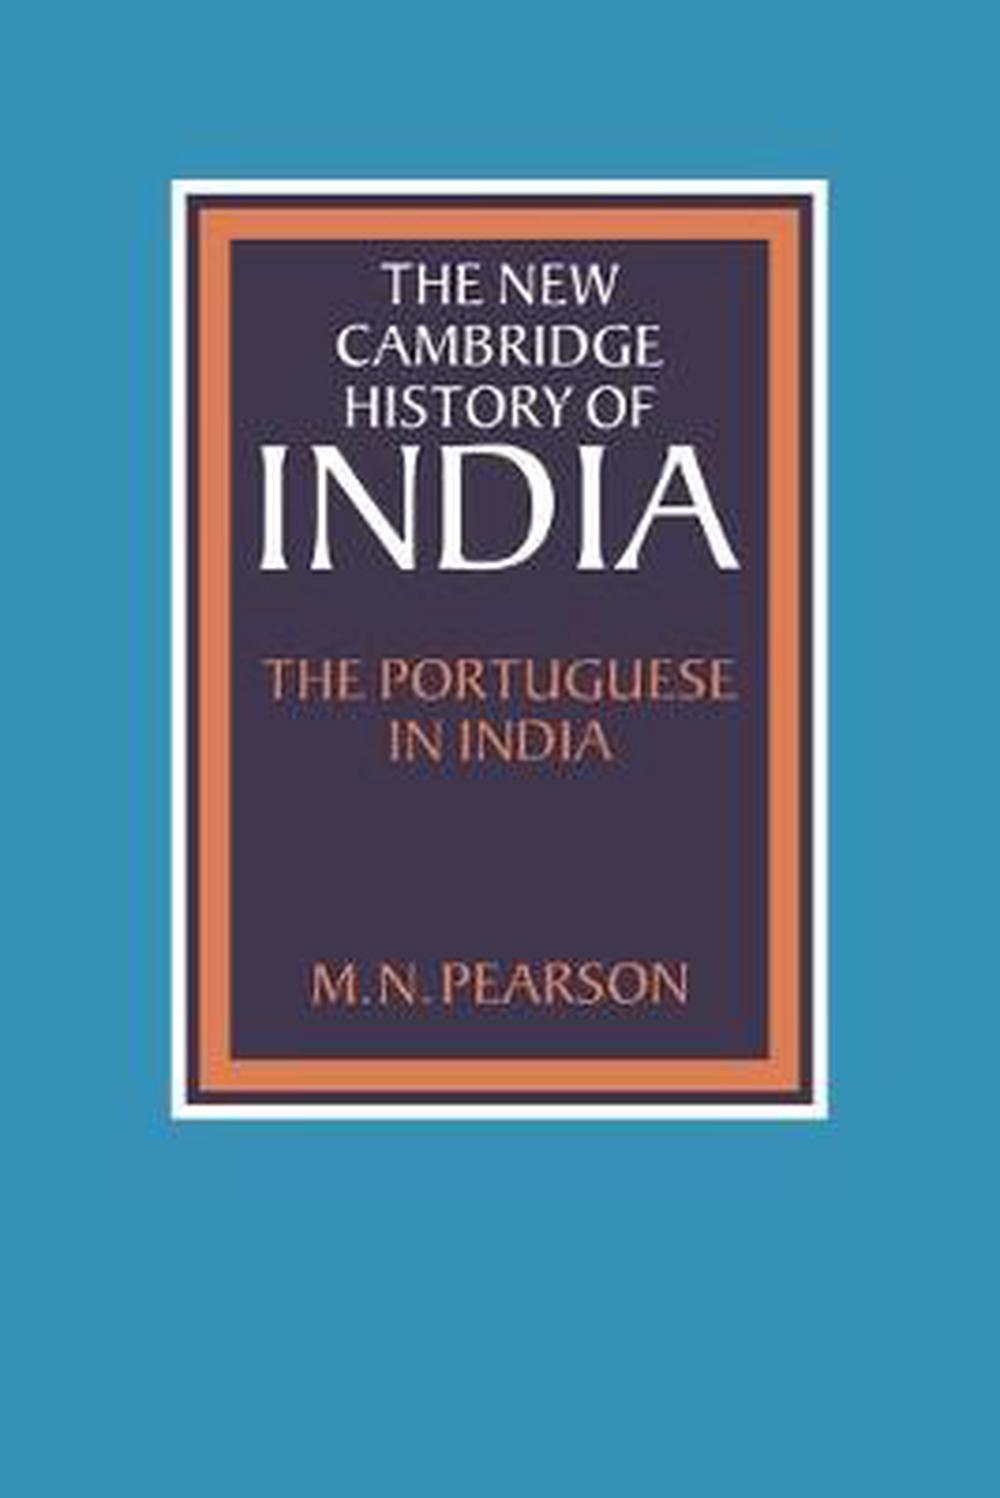 Details about The Portuguese in India by M N  Pearson (English) Paperback  Book Free Shipping!